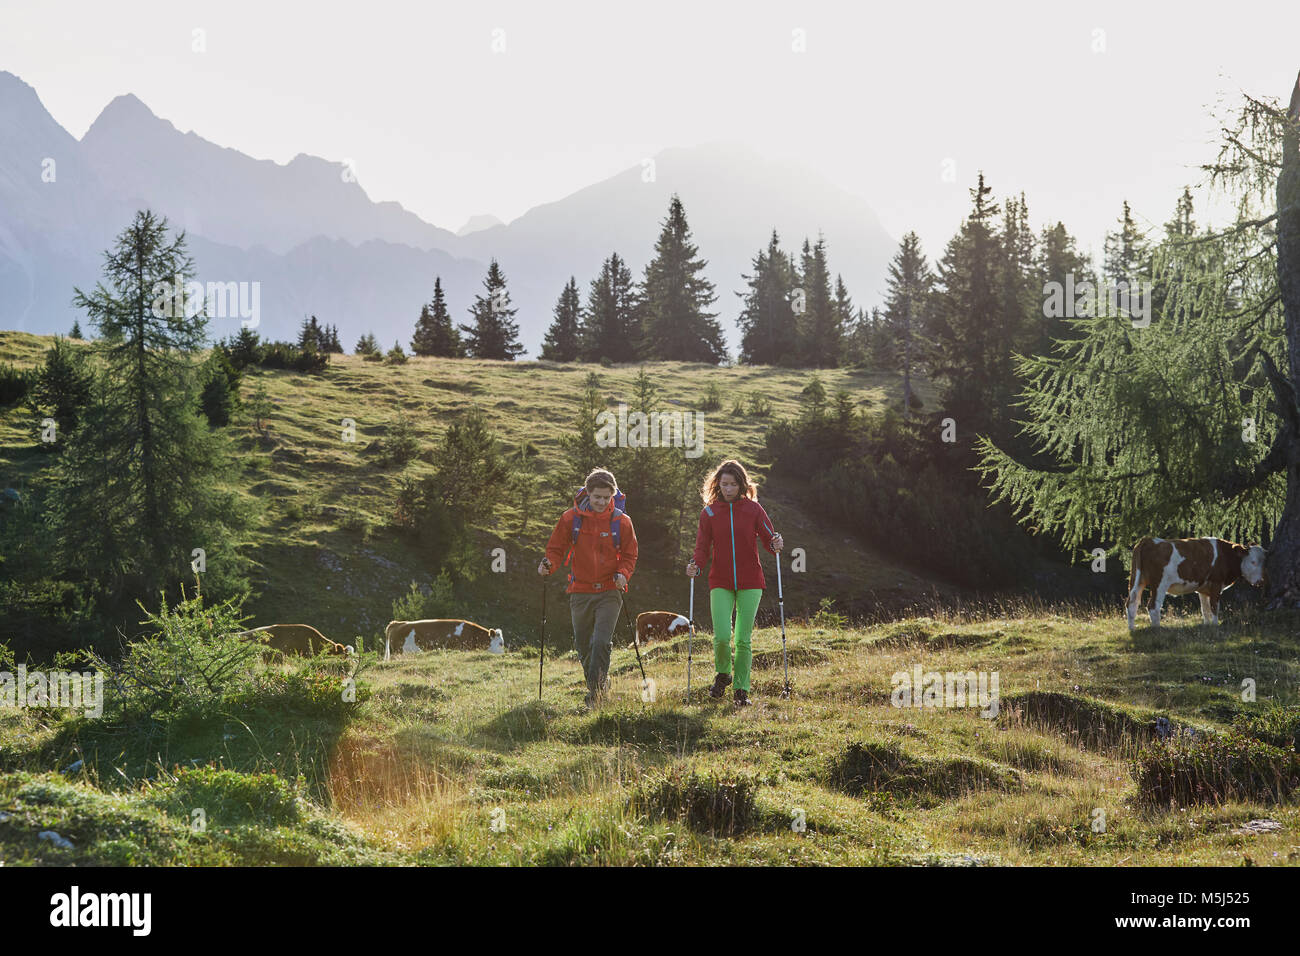 Austria, Tyrol, Mieming Plateau, hikers walking on alpine meadow with cows - Stock Image